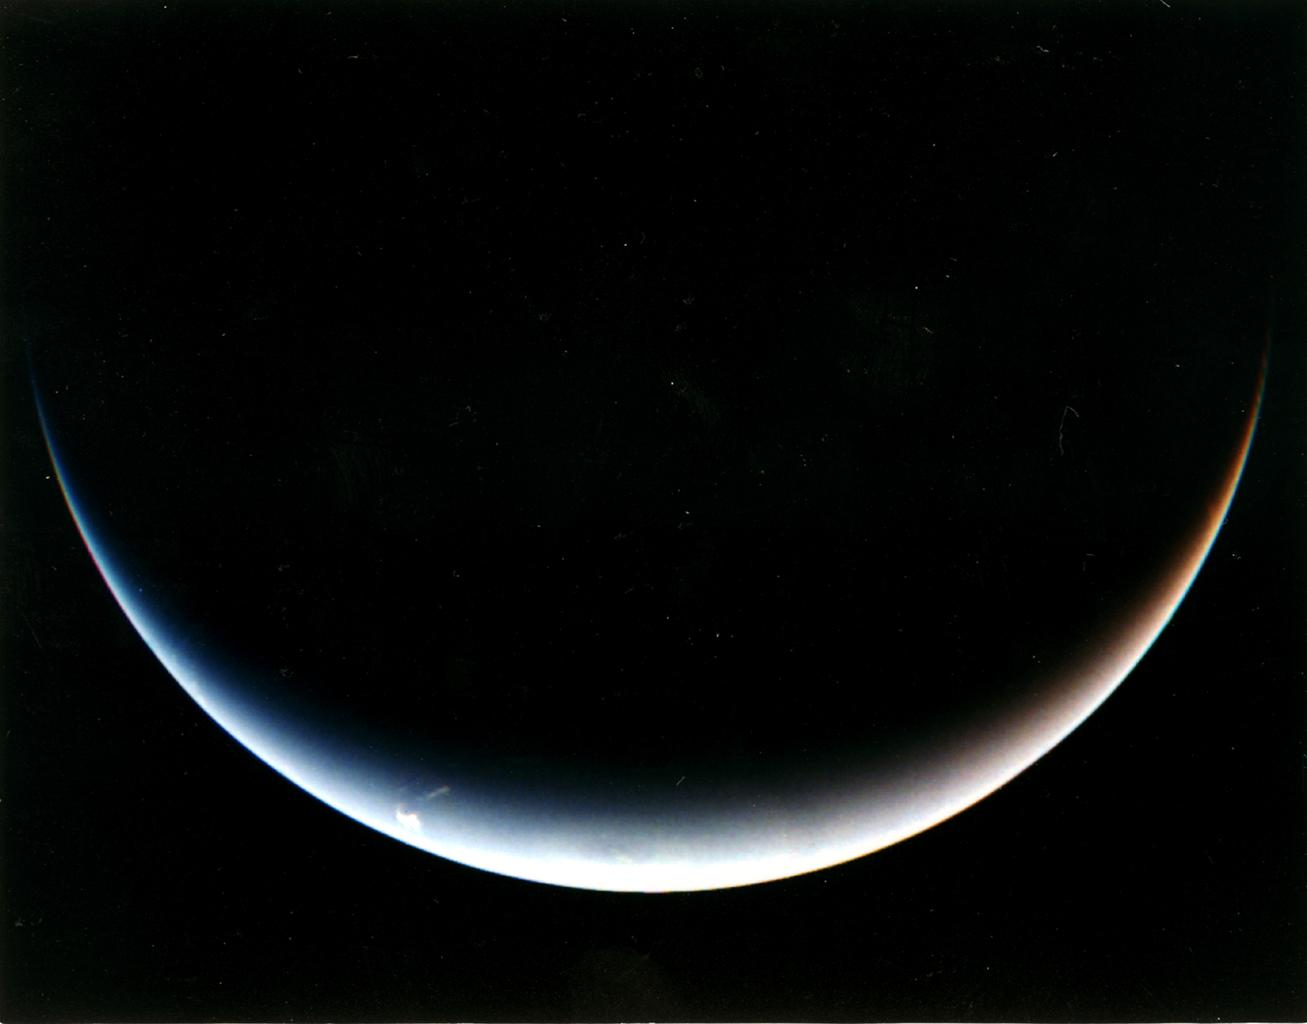 NASA's Voyager 2's post-encounter view of Neptune's south pole as the spacecraft sped away on a southward trajectory.